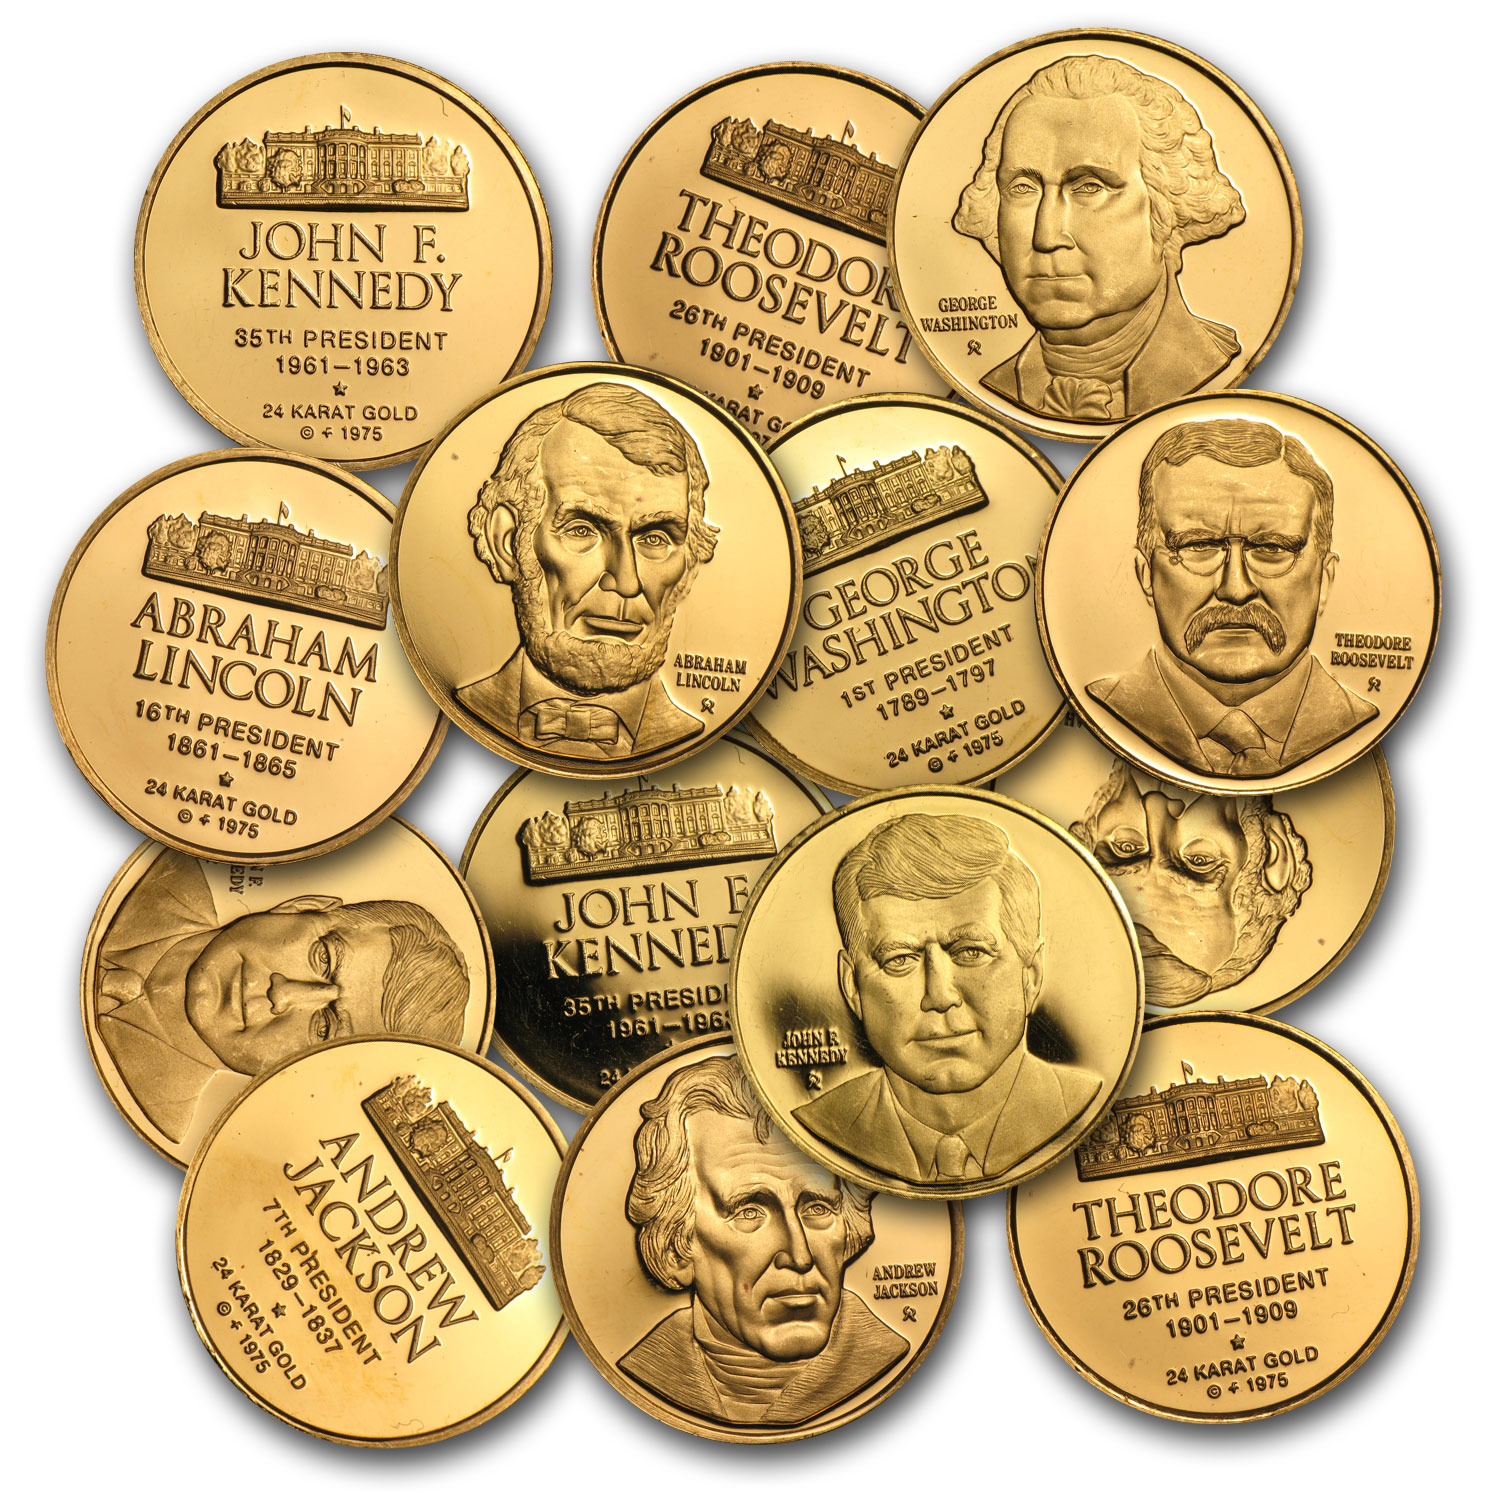 .15 oz Gold Round - Presidential Gold Medals